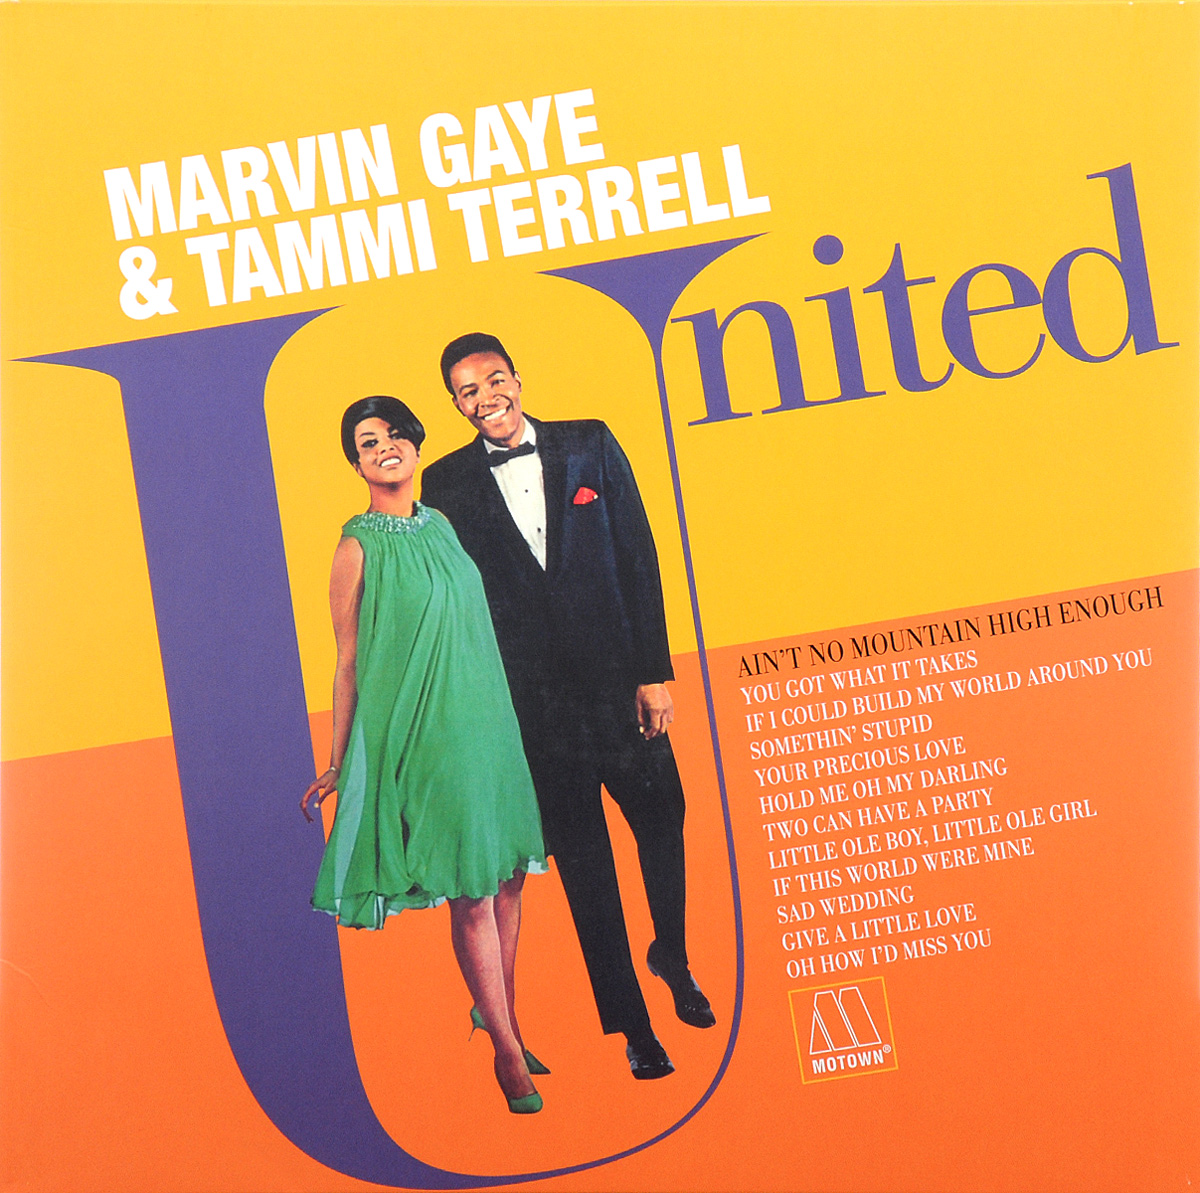 Марвин Гэй,Тэмми Тирелл Marvin Gaye & Tammi Terrell. United (LP) marvin gaye marvin gaye how sweet it is to be loved by you